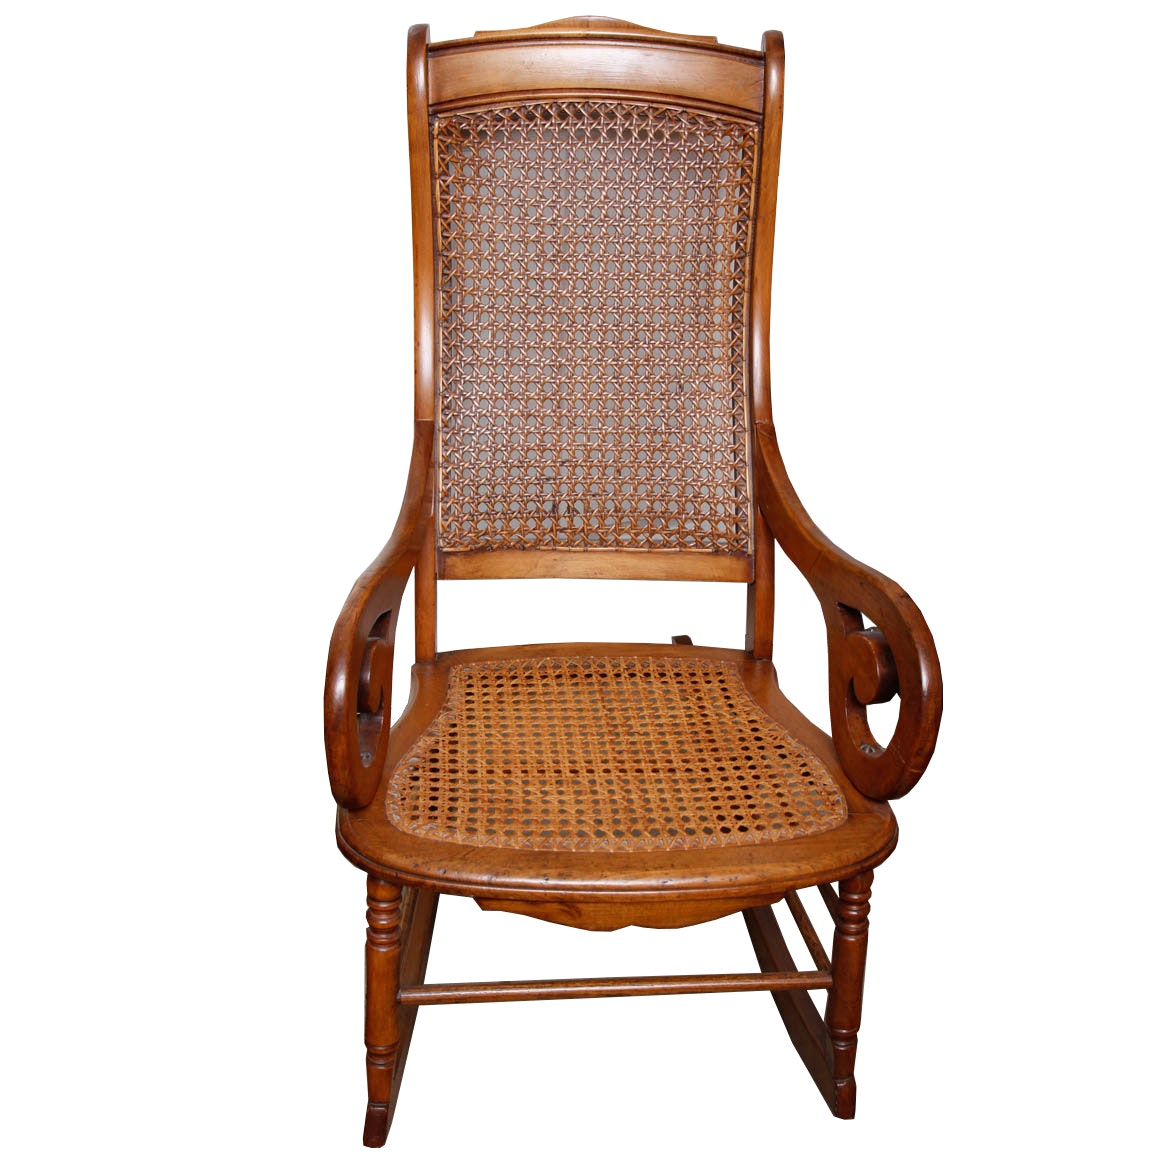 Late 19th Century Victorian Caned Rocking Chair